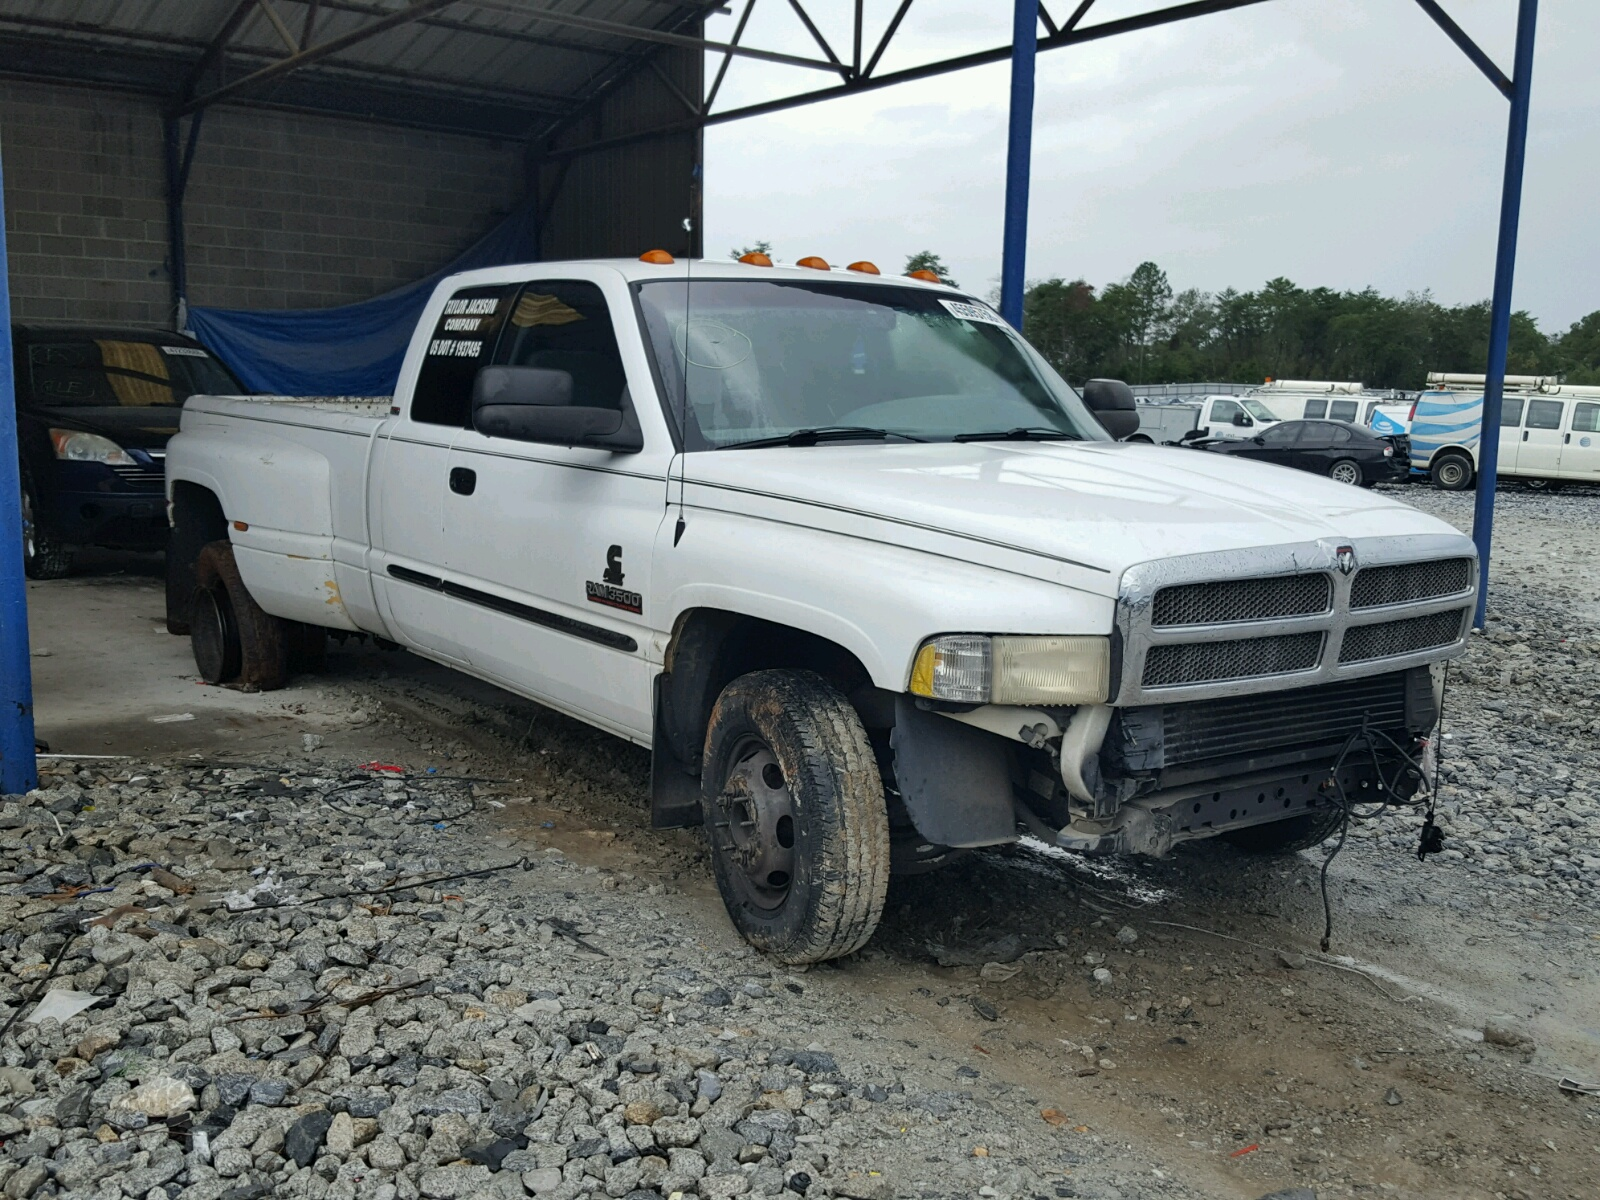 2001 Dodge Ram 3500 For Sale At Copart Cartersville Ga Lot 45595758 Extended Cab